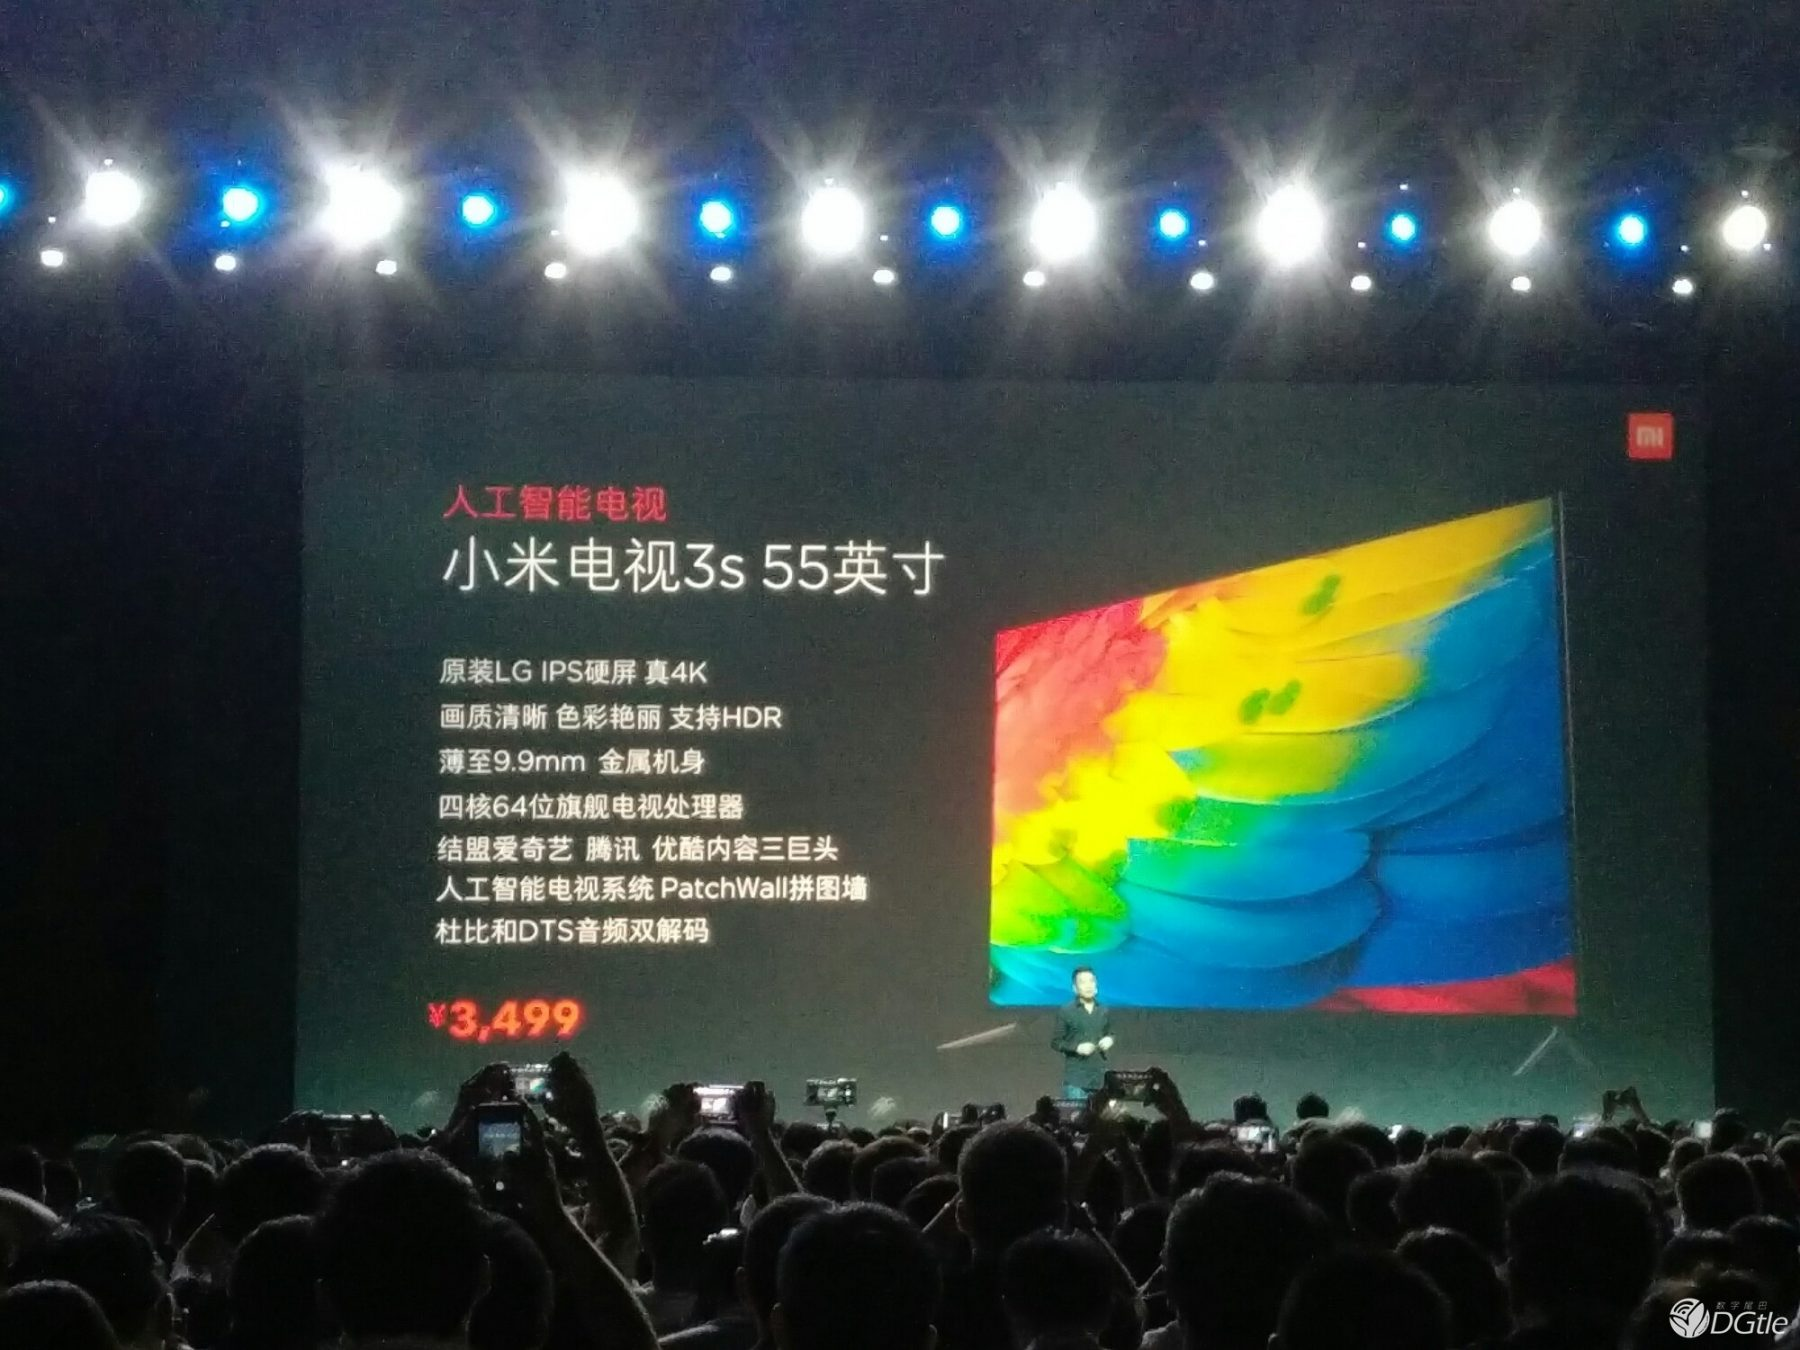 xiaomi-mi-tv-3s-launched-for-750-heres-everything-you-need-to-know-1